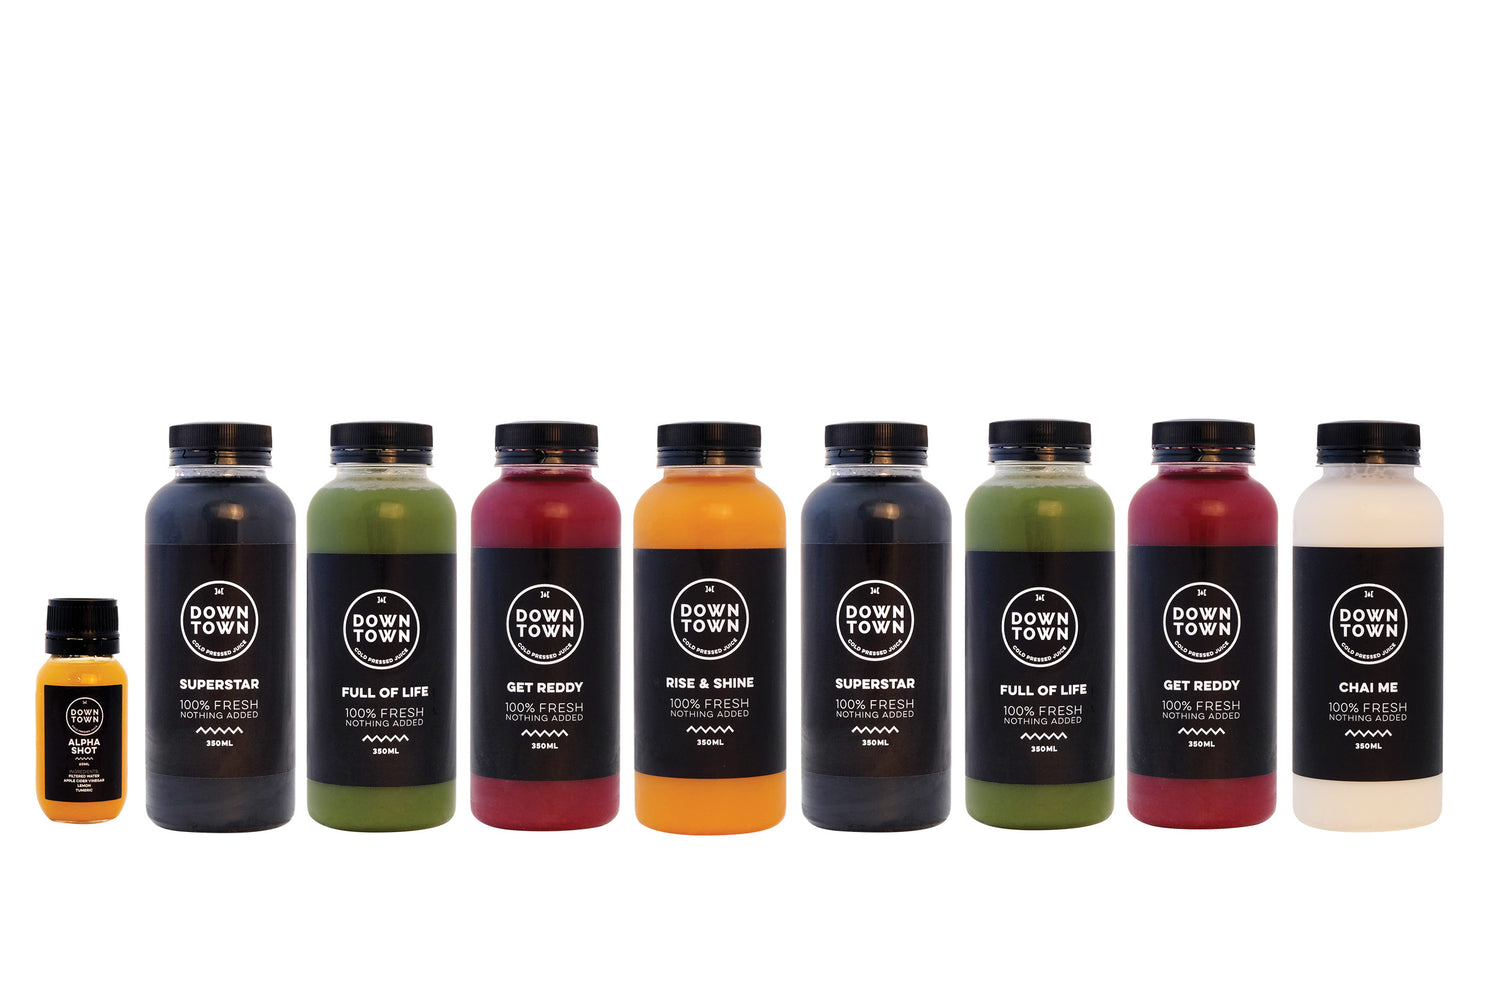 Deep detox juice cleanse pack